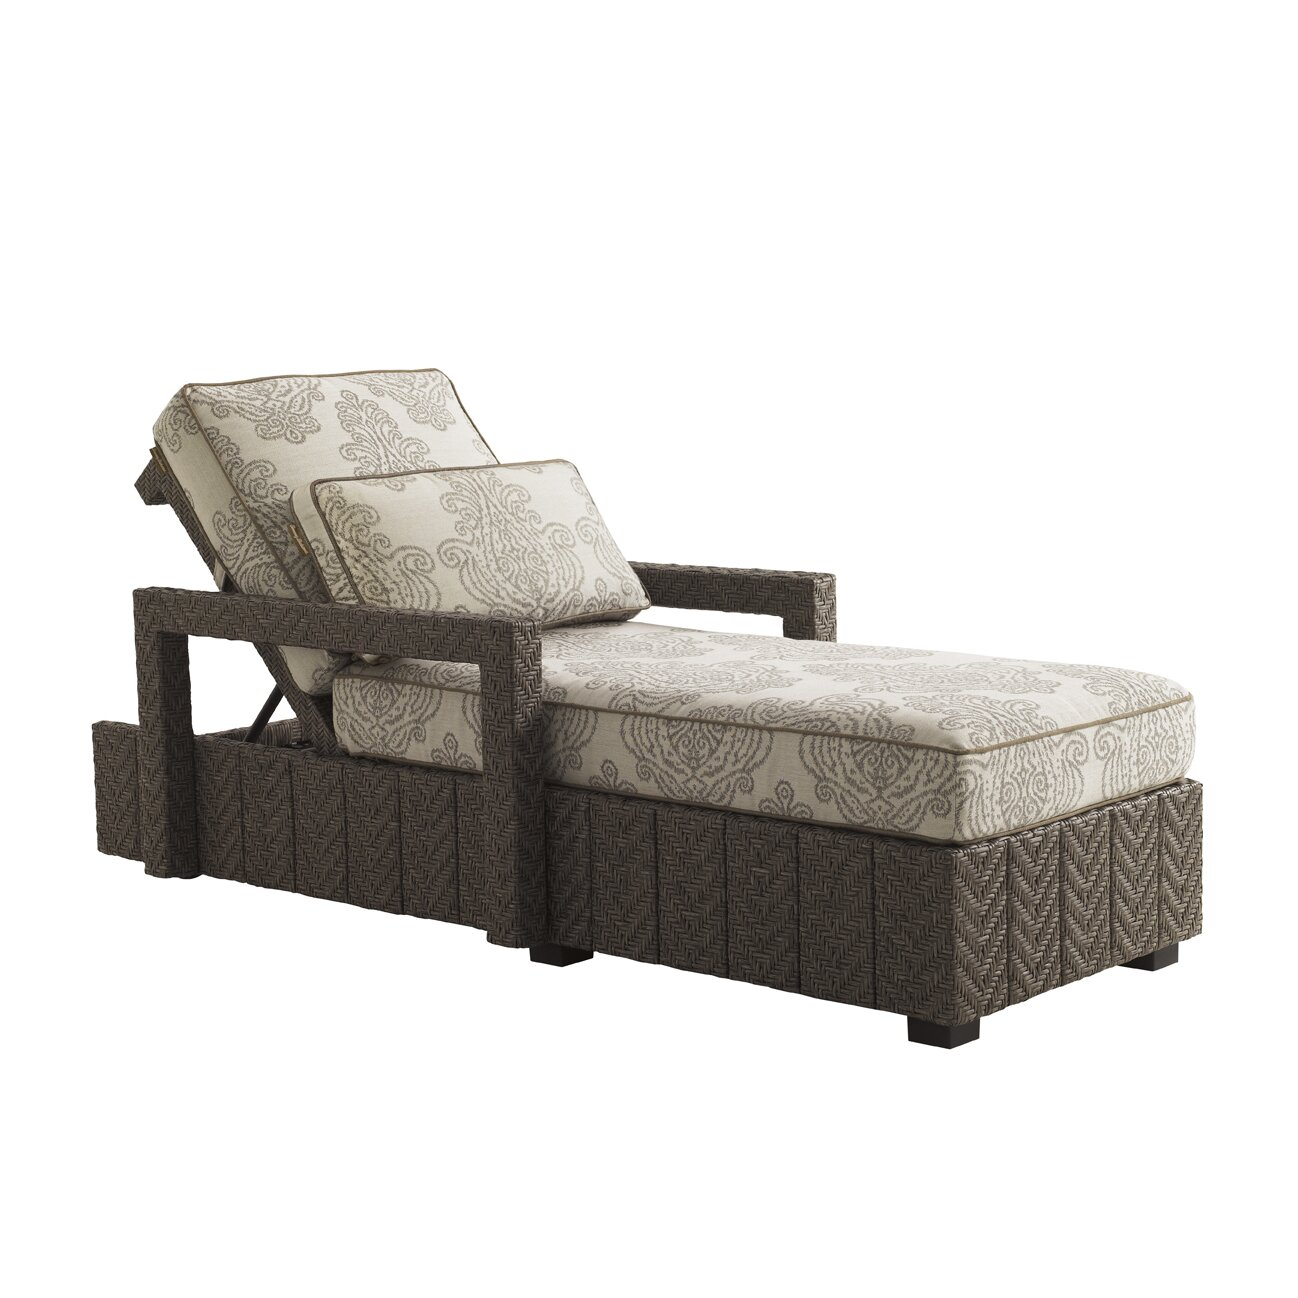 Tommy Bahama Outdoor Blue Olive Chaise Lounge with Cushion & Reviews